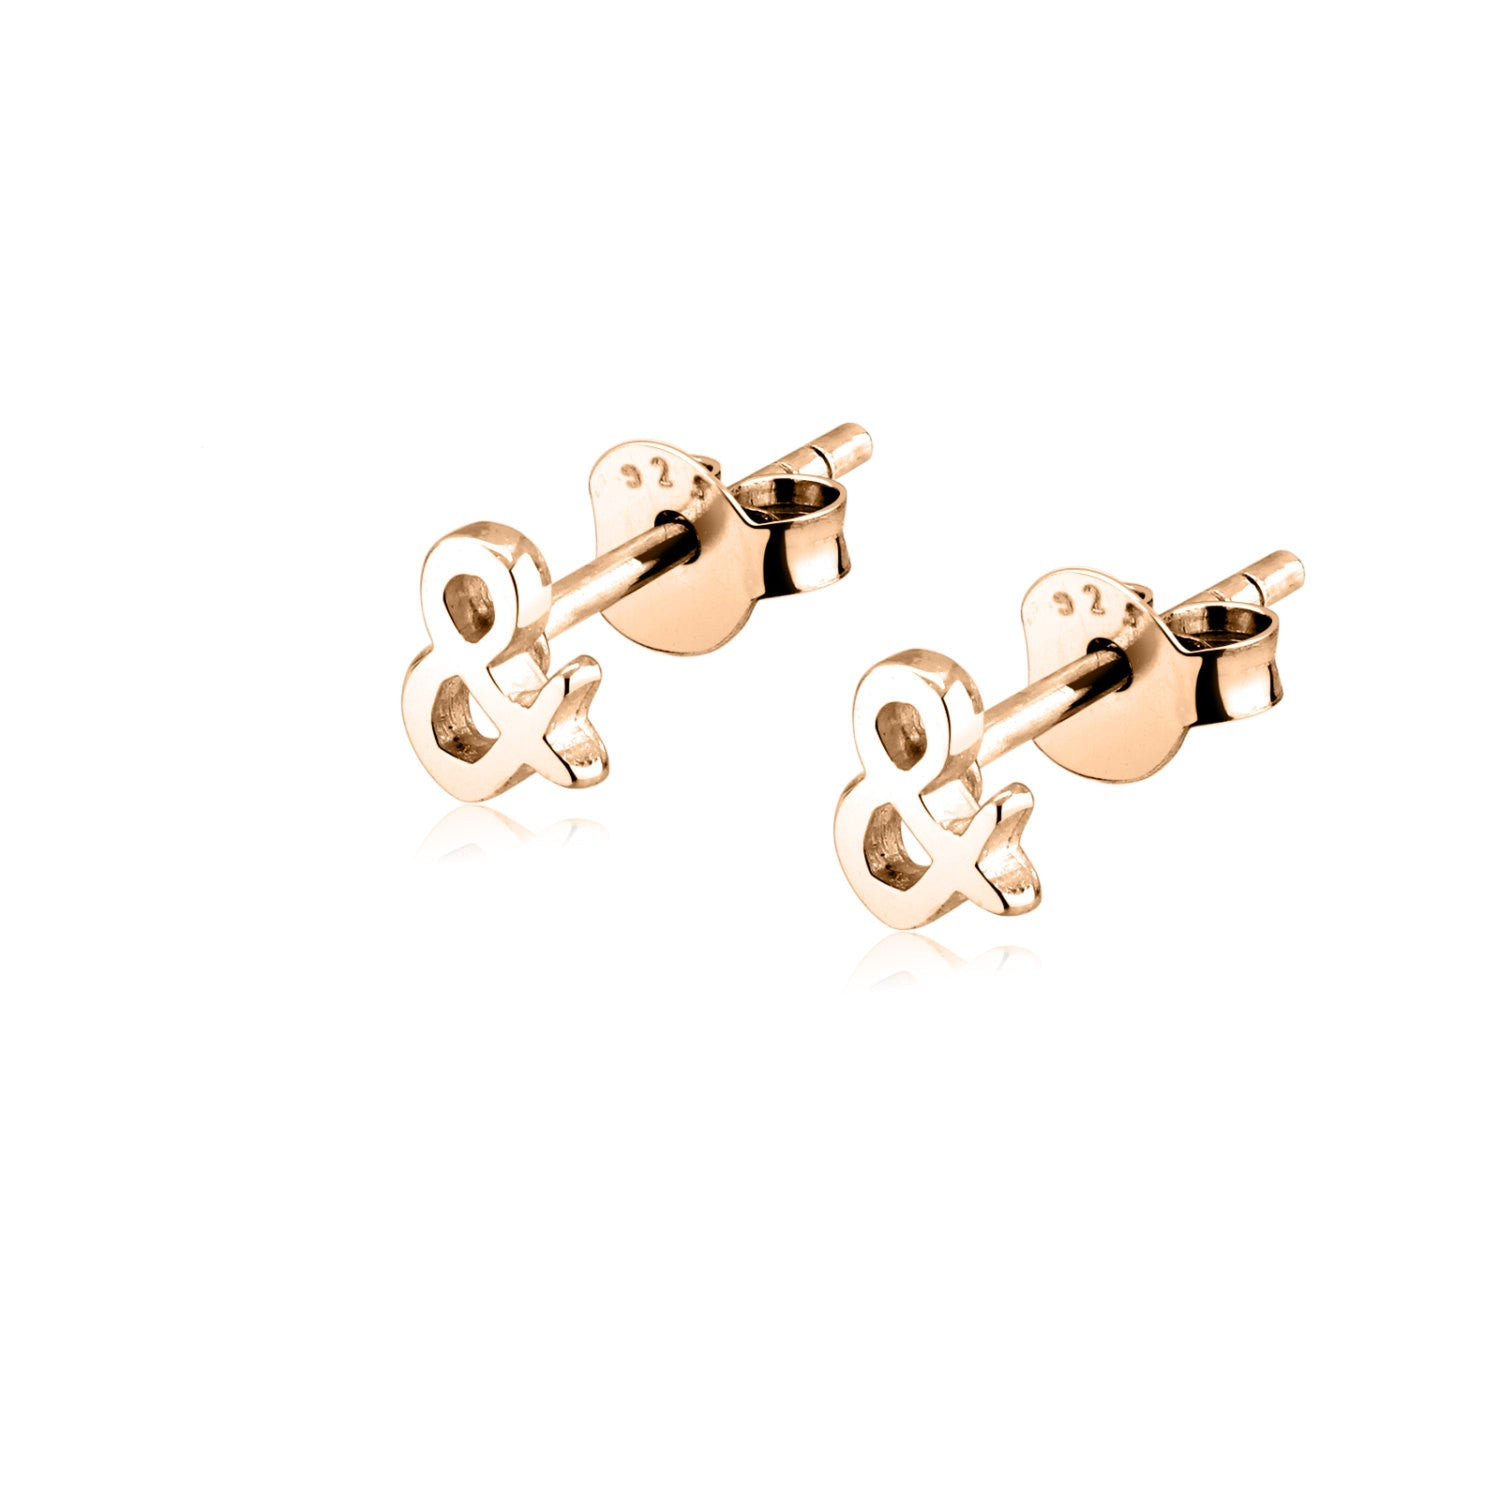 Dainty Tiny Ampersand Symbol Earrings Girl Women